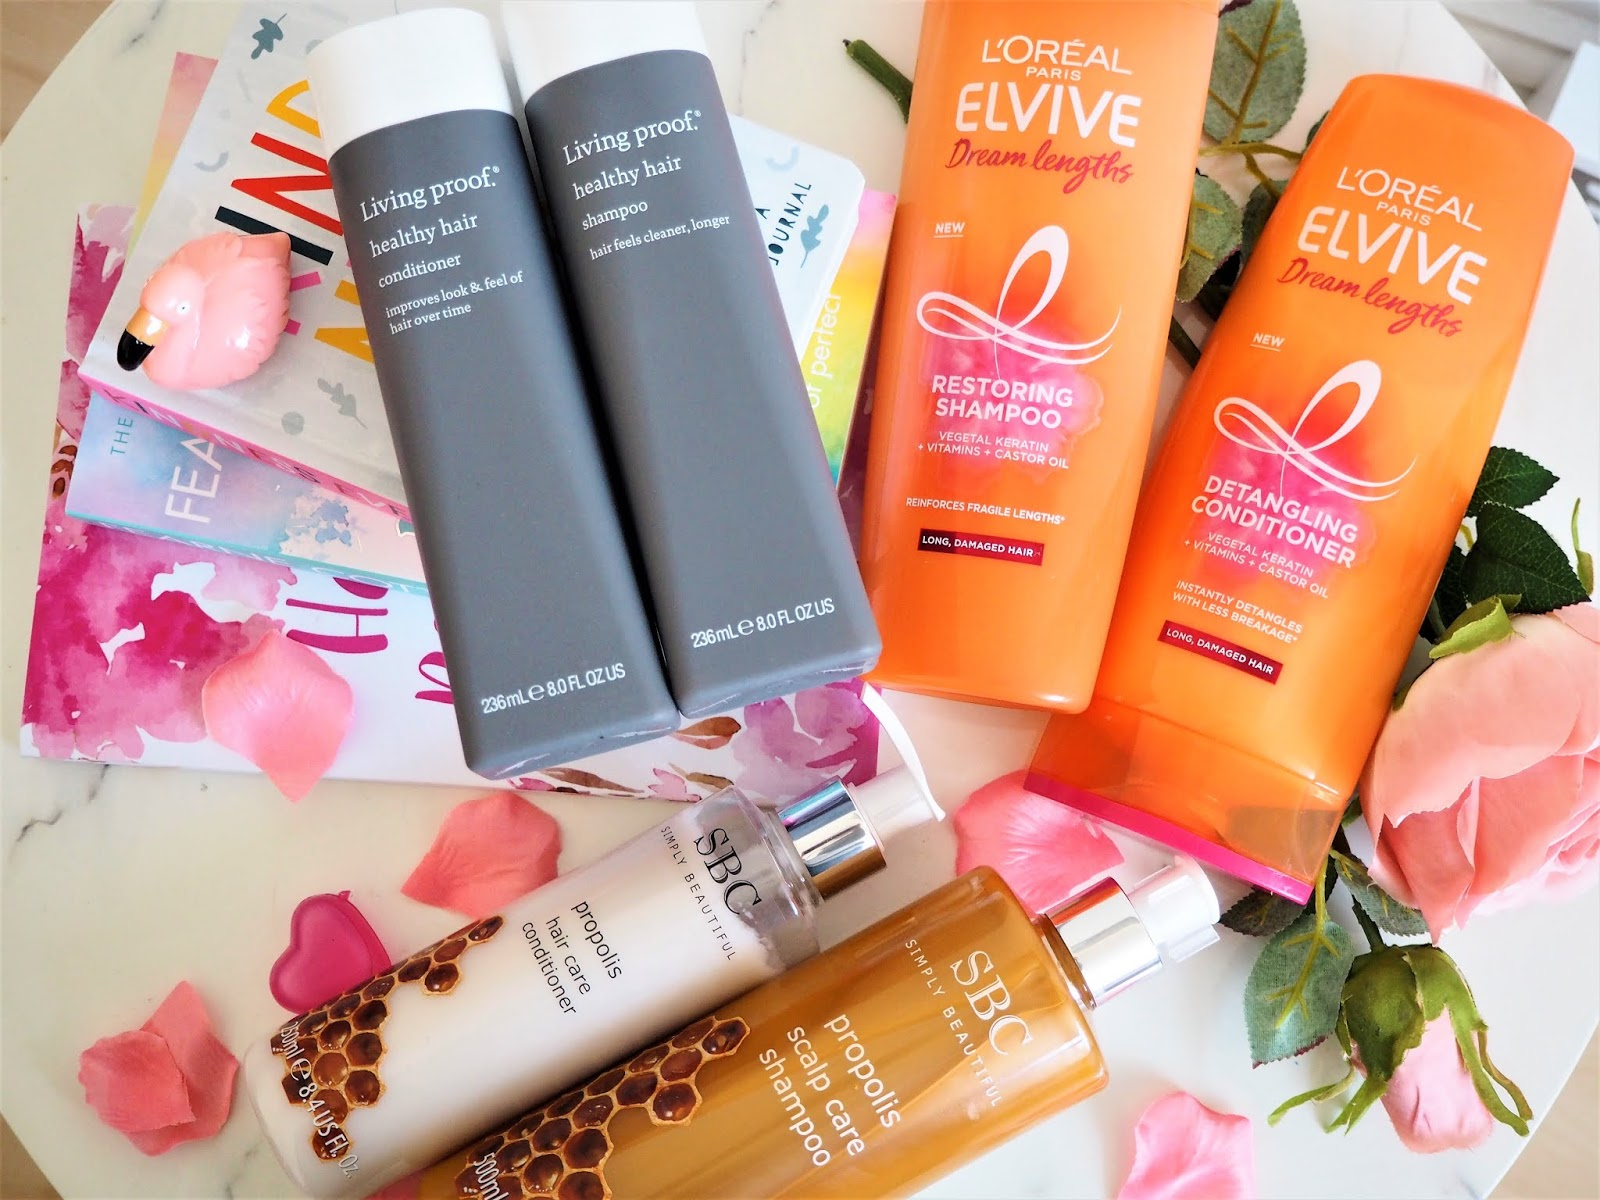 Tried & Tested : Shampoo and conditioner from High End to High Street for all hair concerns